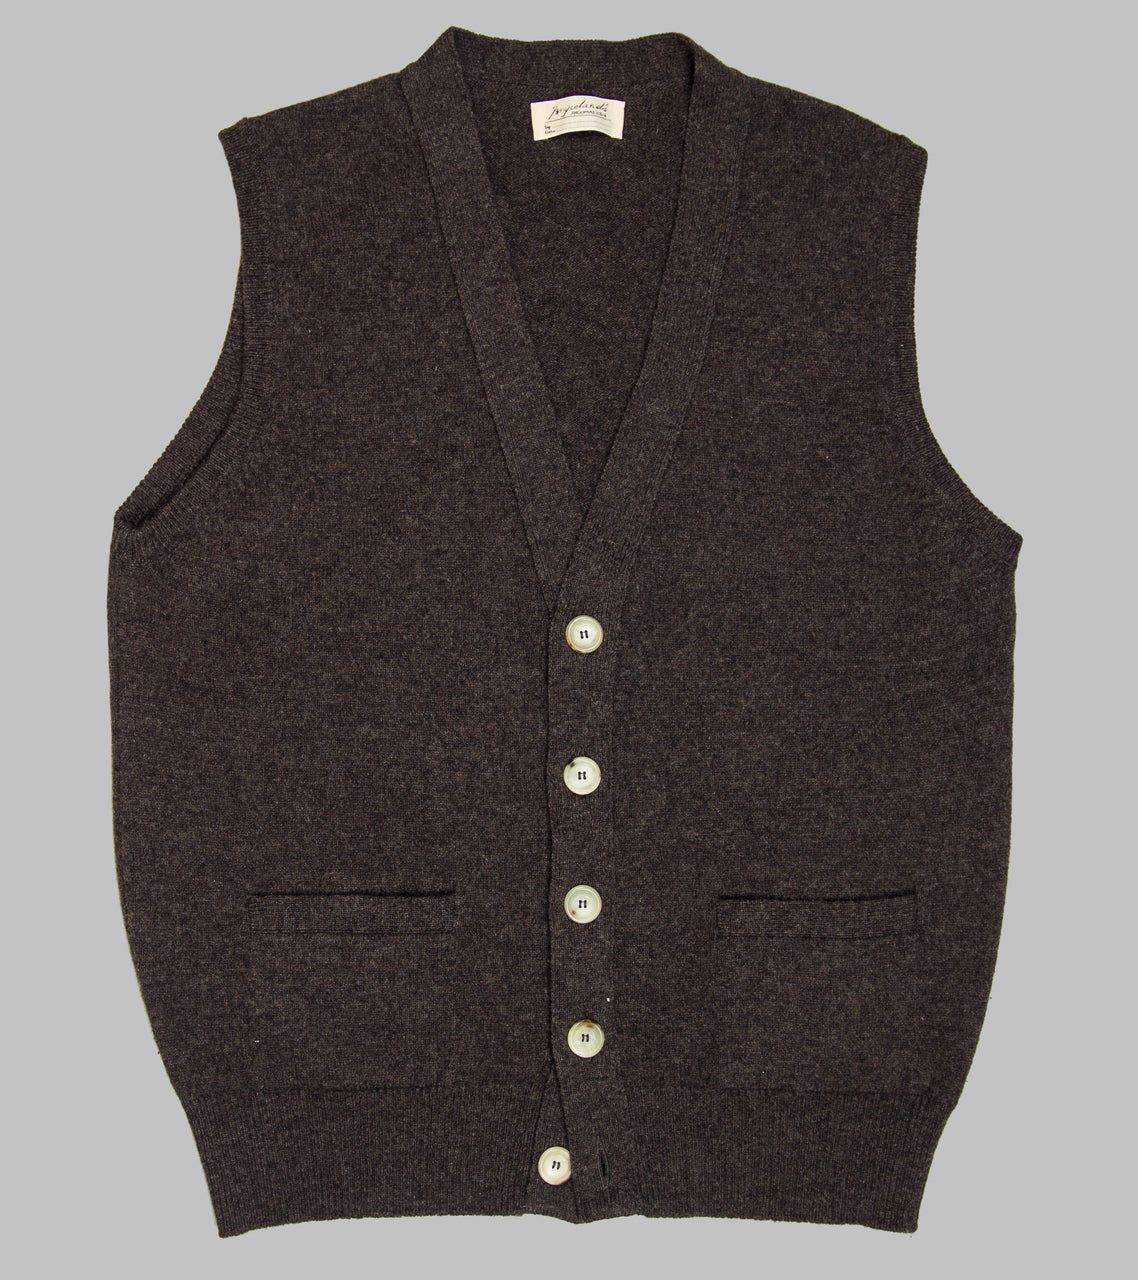 Bryceland's Lambswool Sleeveless Cardigan Cocoa